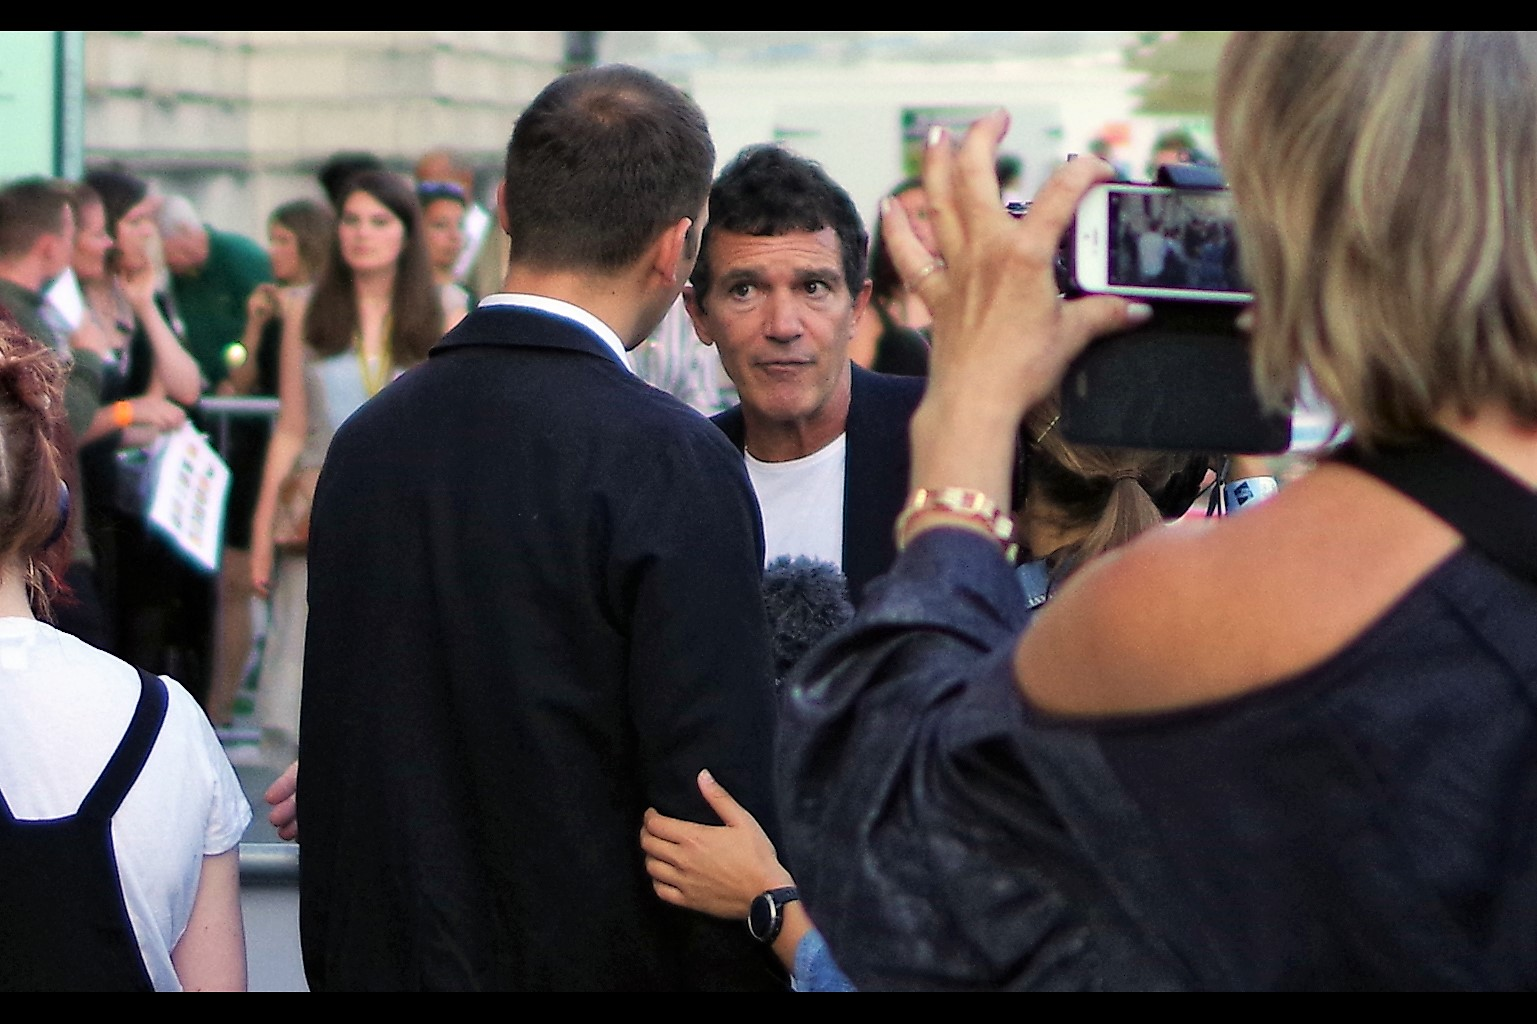 """I'm not sure why she's grabbing your arm and not mine… where am I going wrong here?""  Antonio Banderas looks confused."